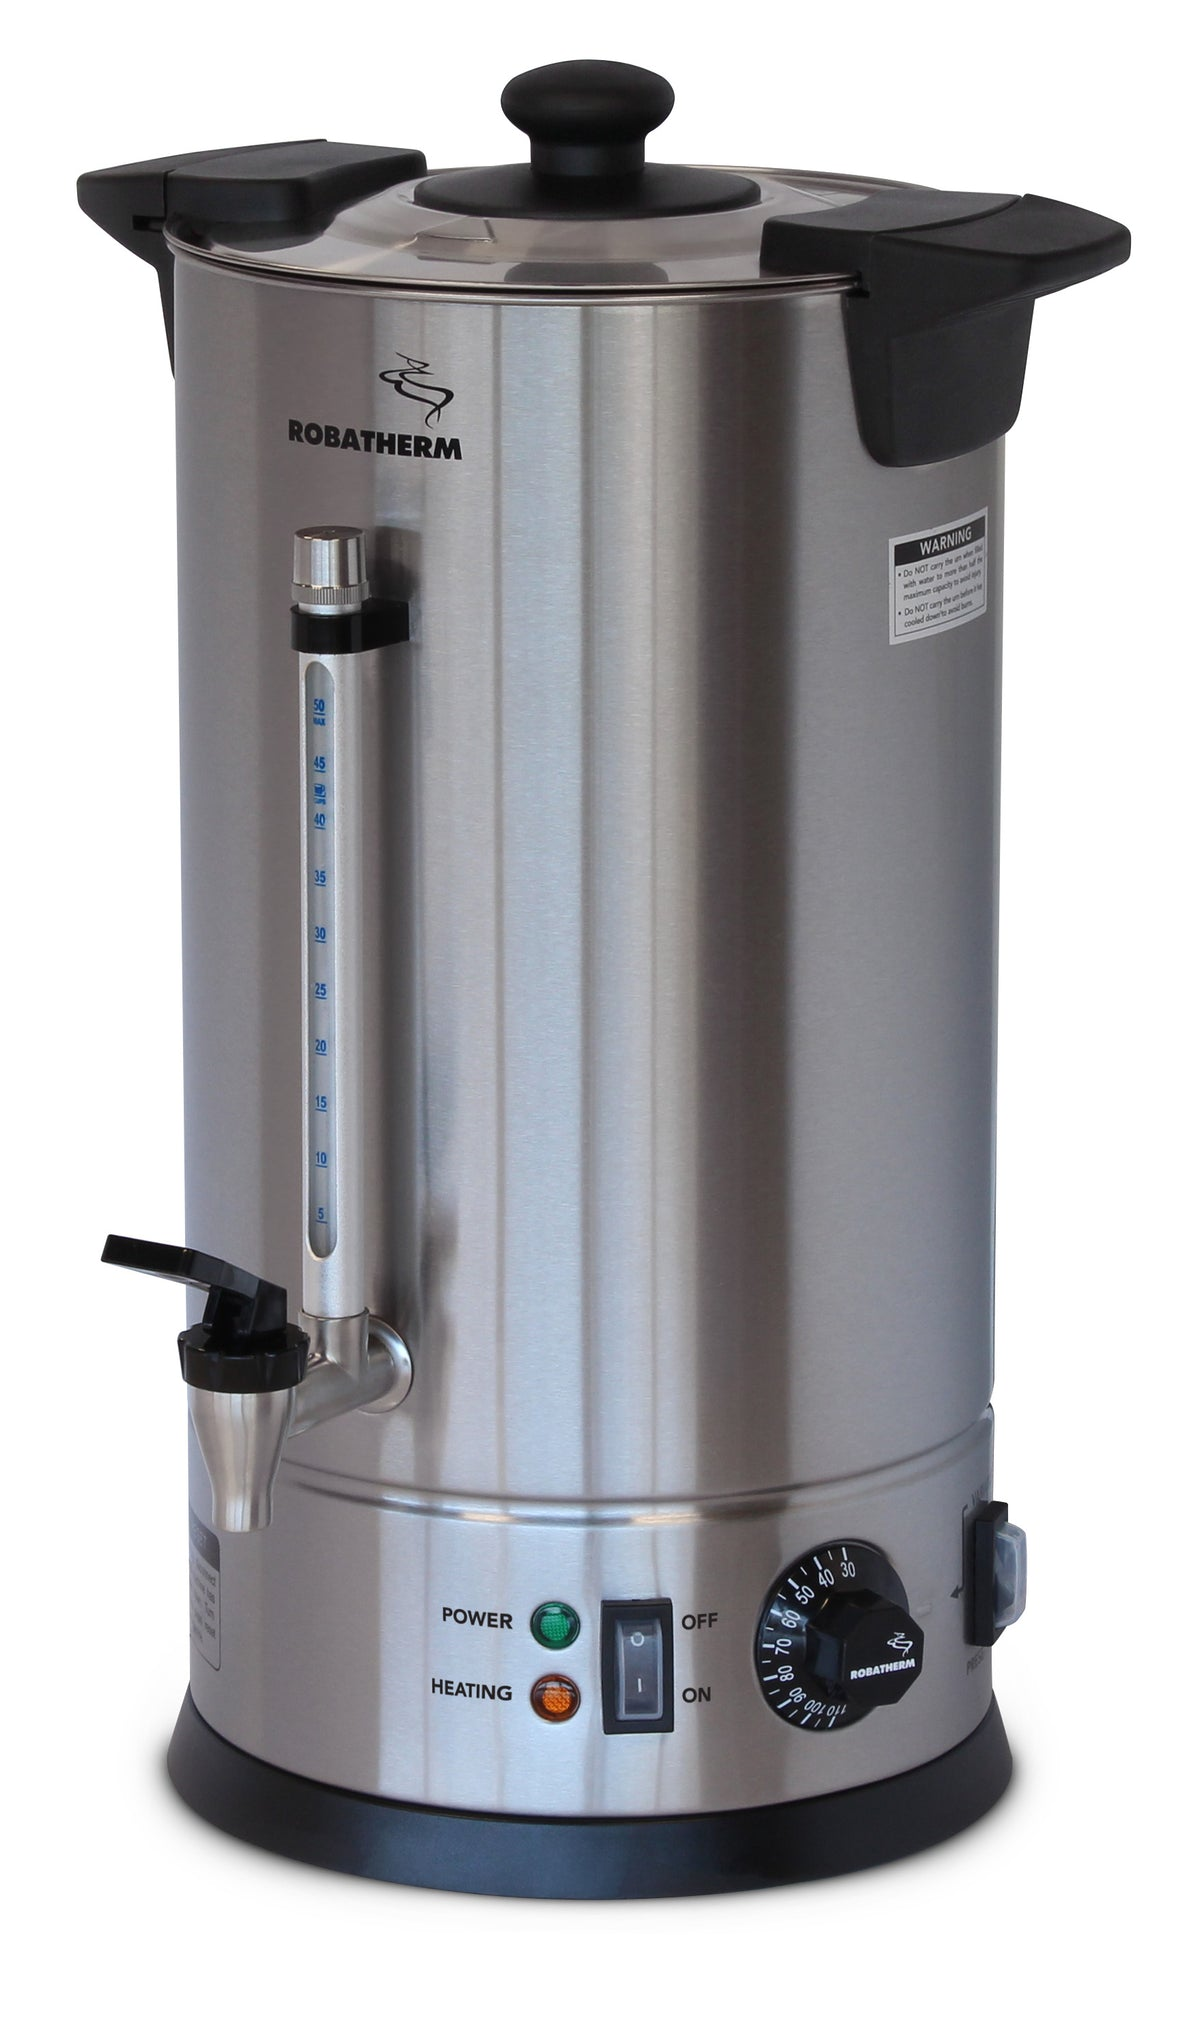 Robatherm Hot Water Urn - 10 Litre